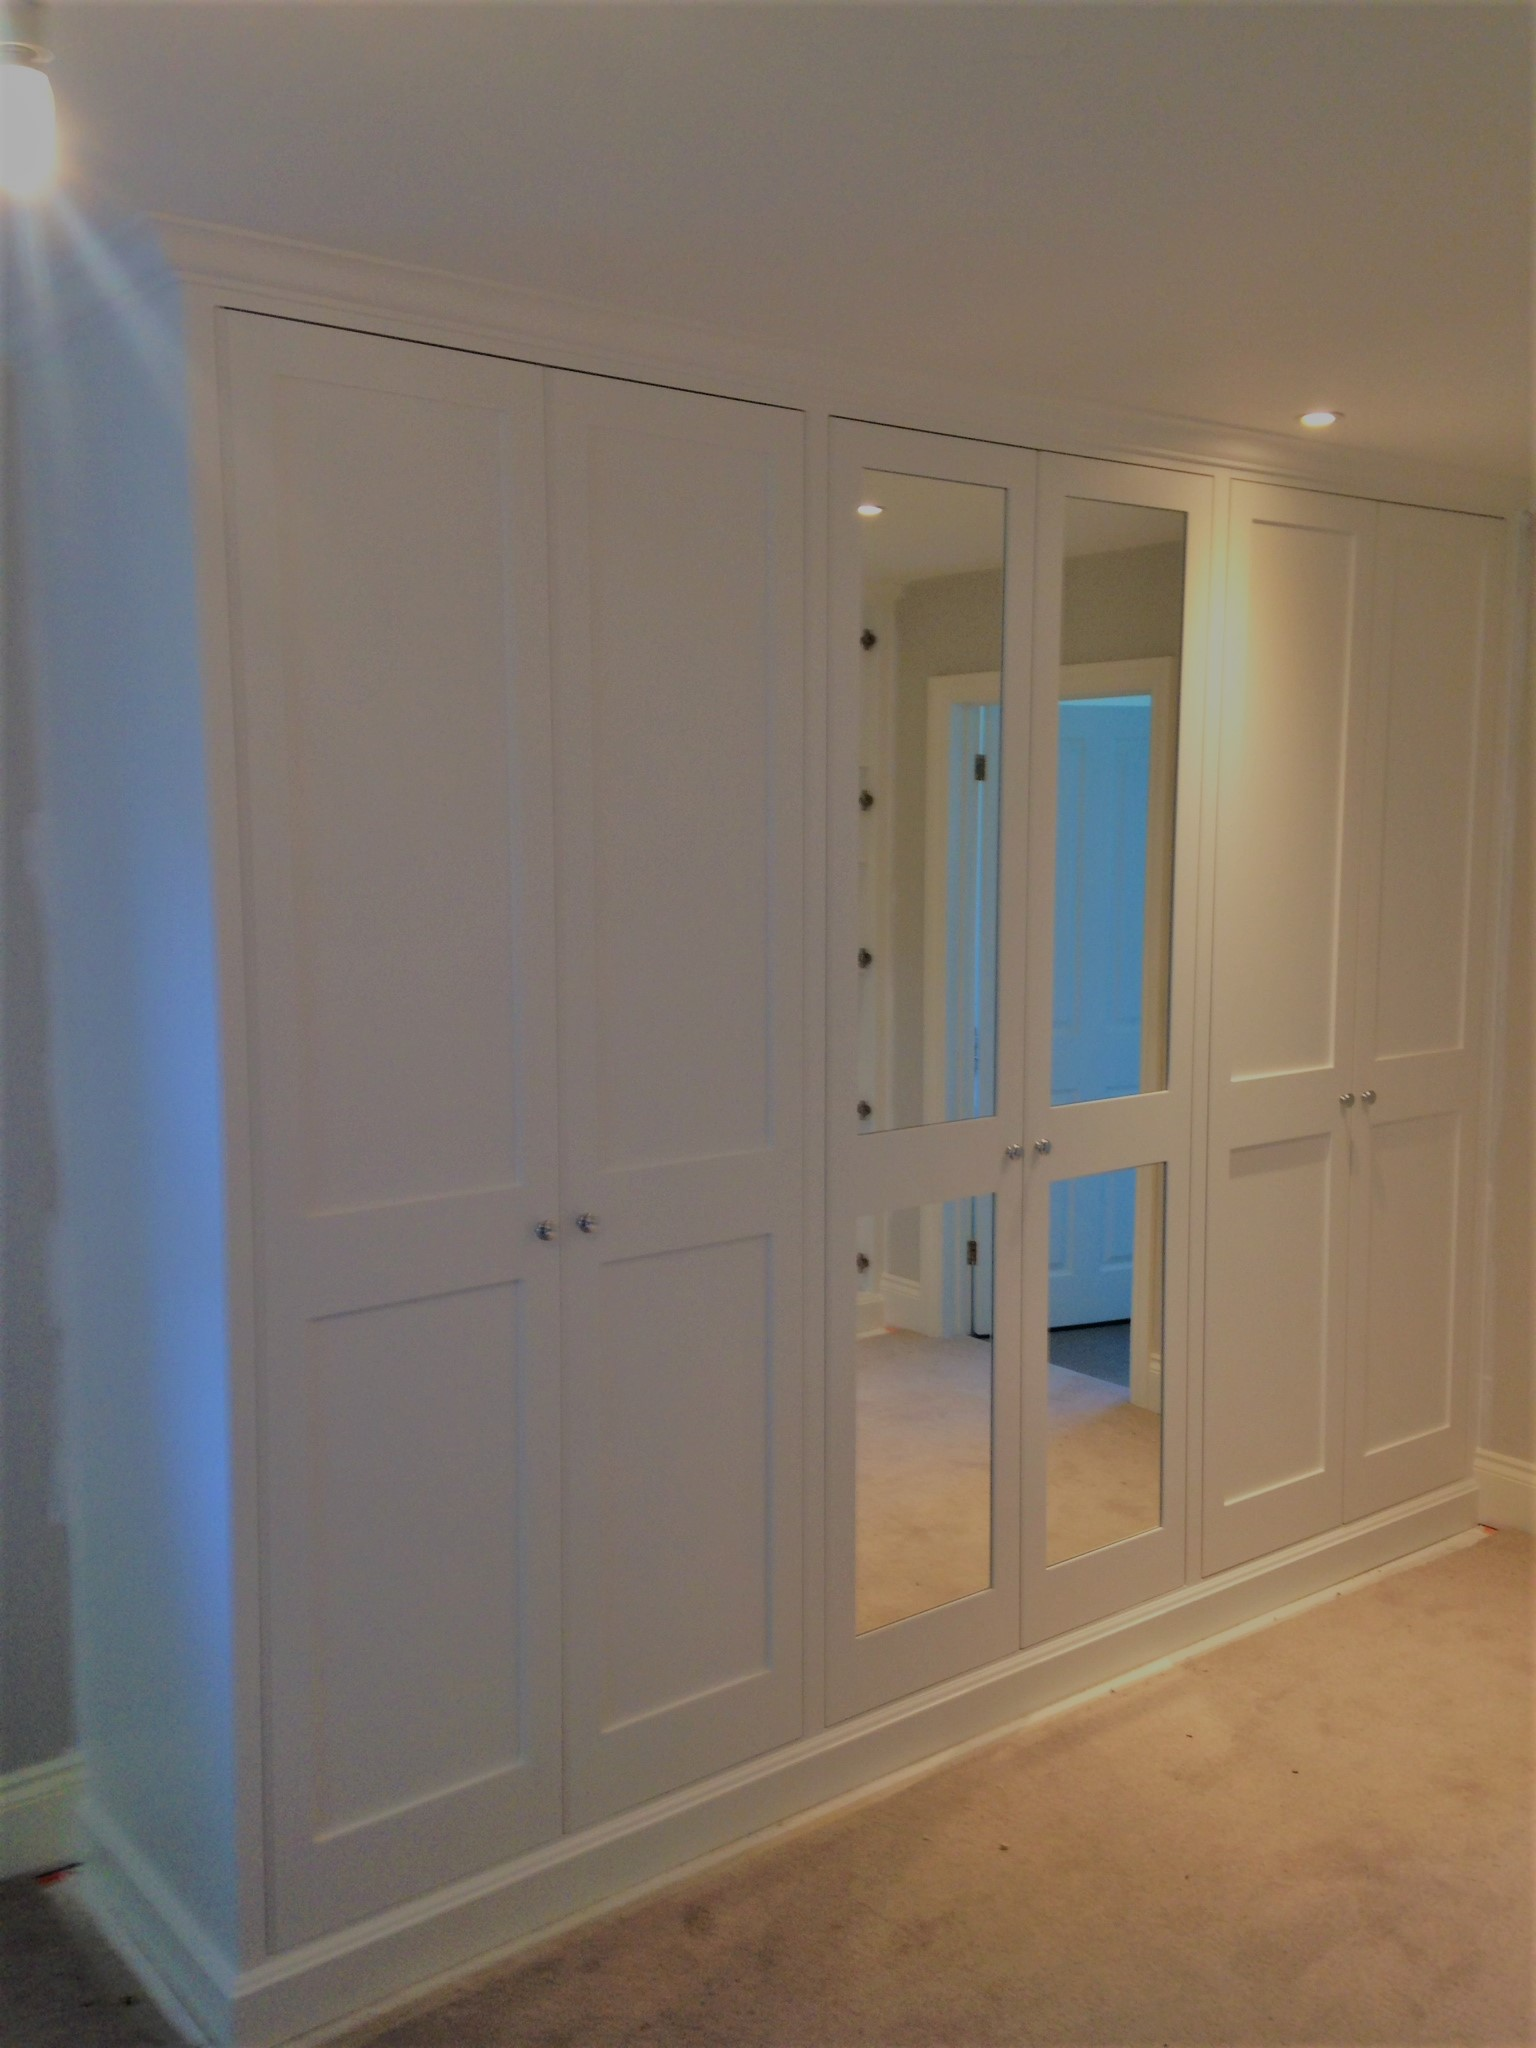 A 6 door wardrobe with a central pair of mirrored panel doors.